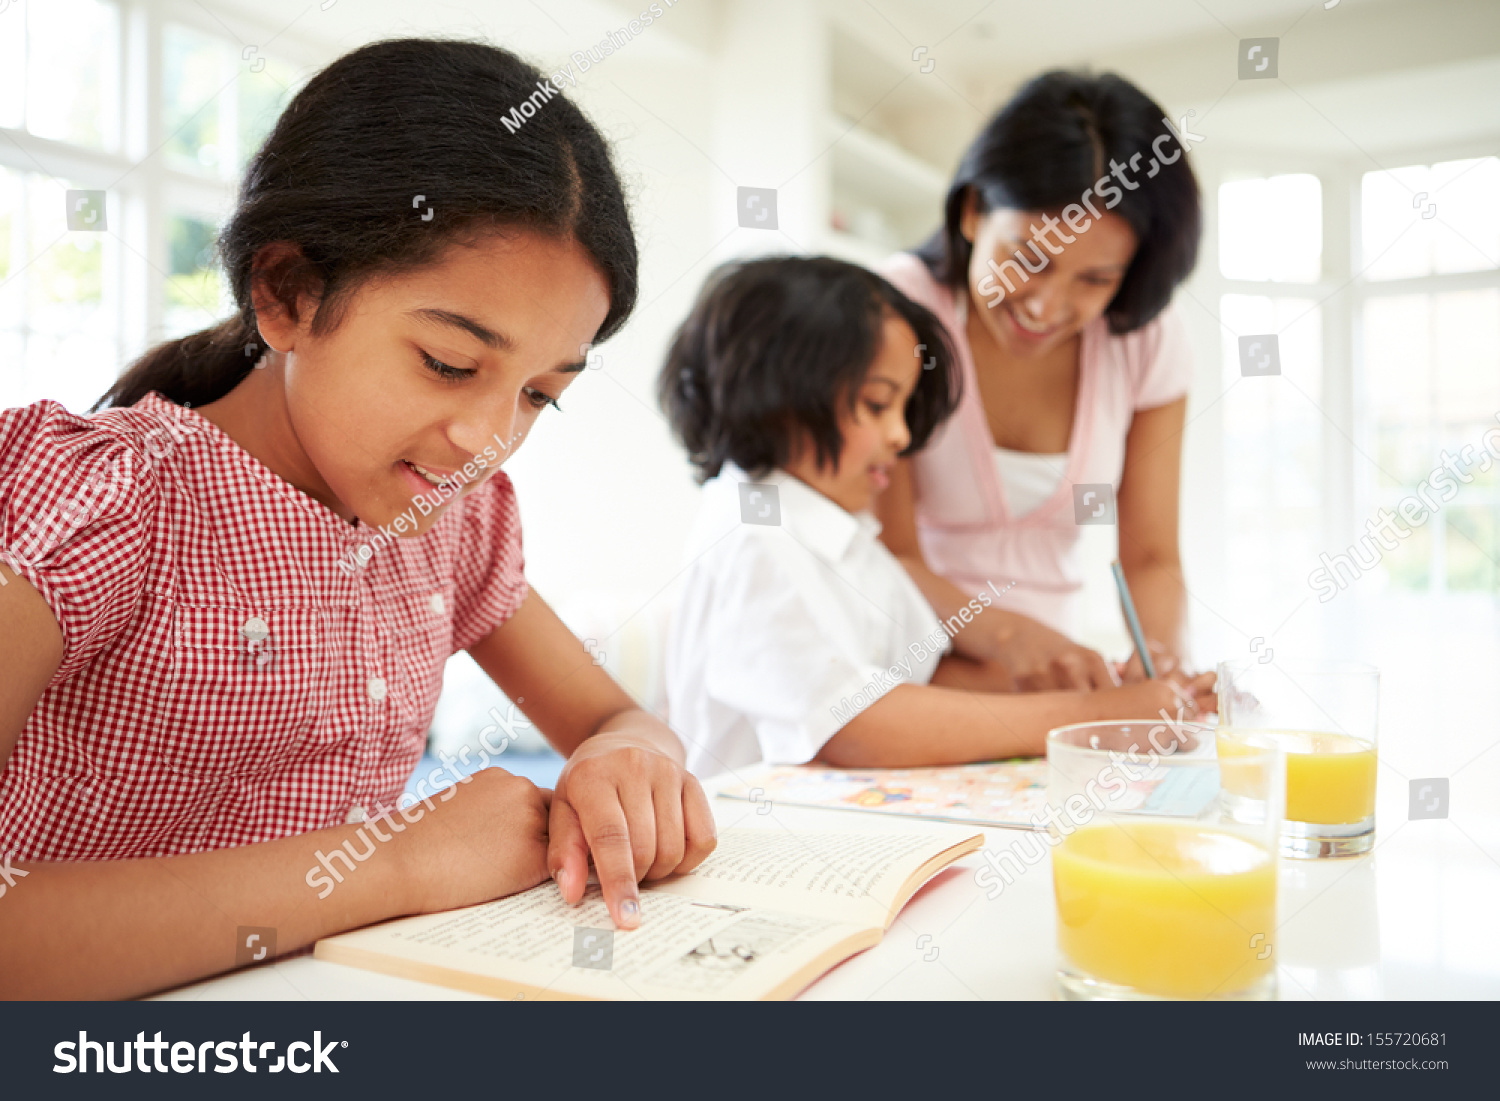 advantages connected with multilingualism essay scholarships